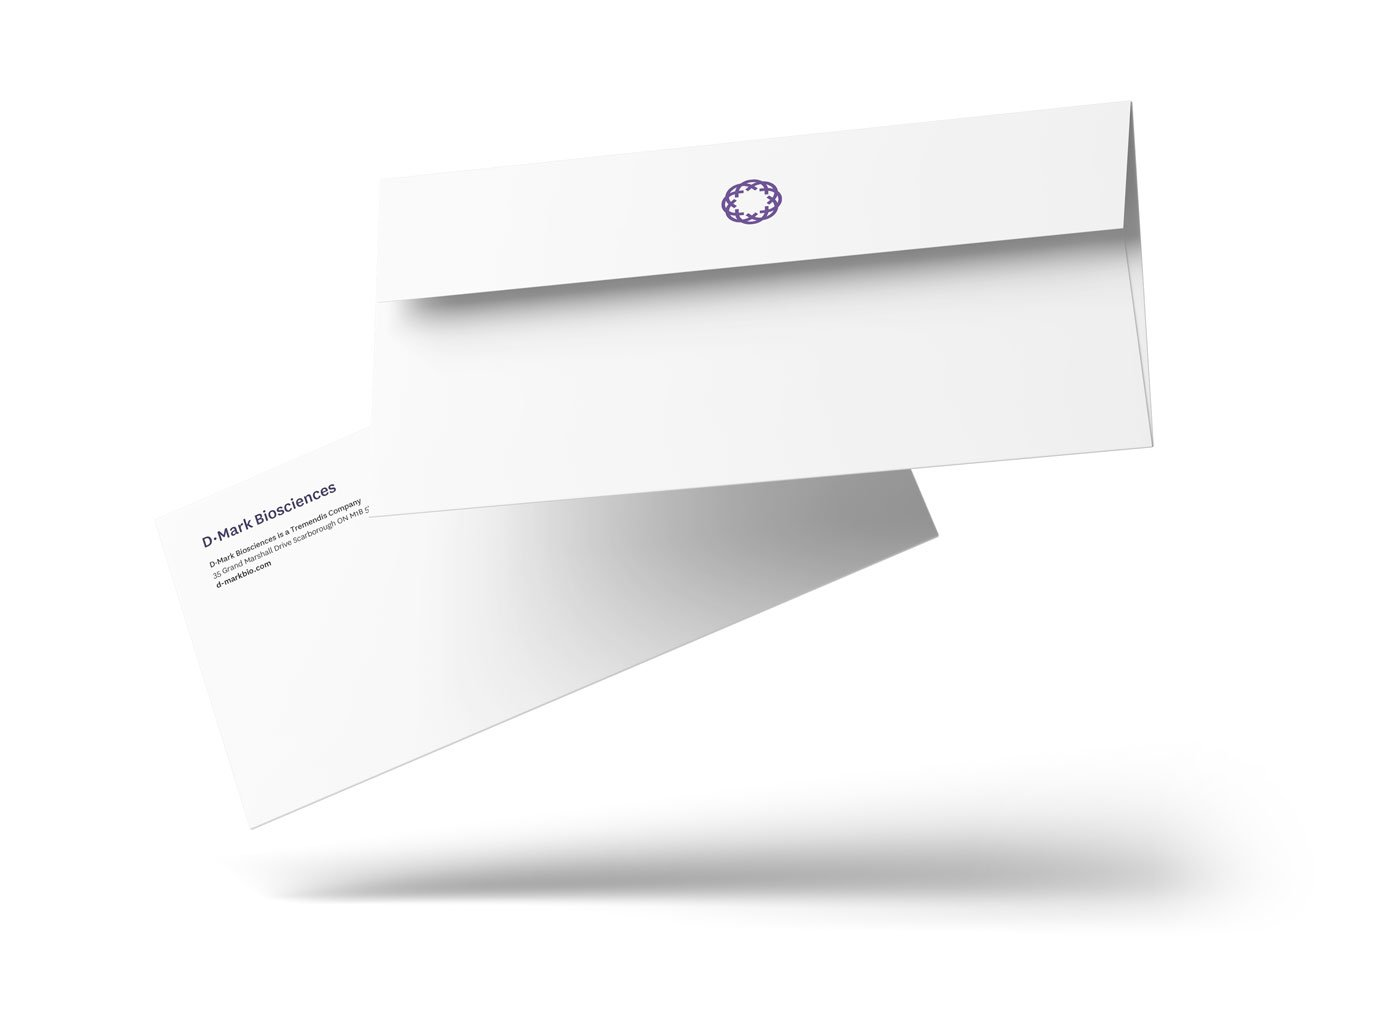 biosciences envelope design